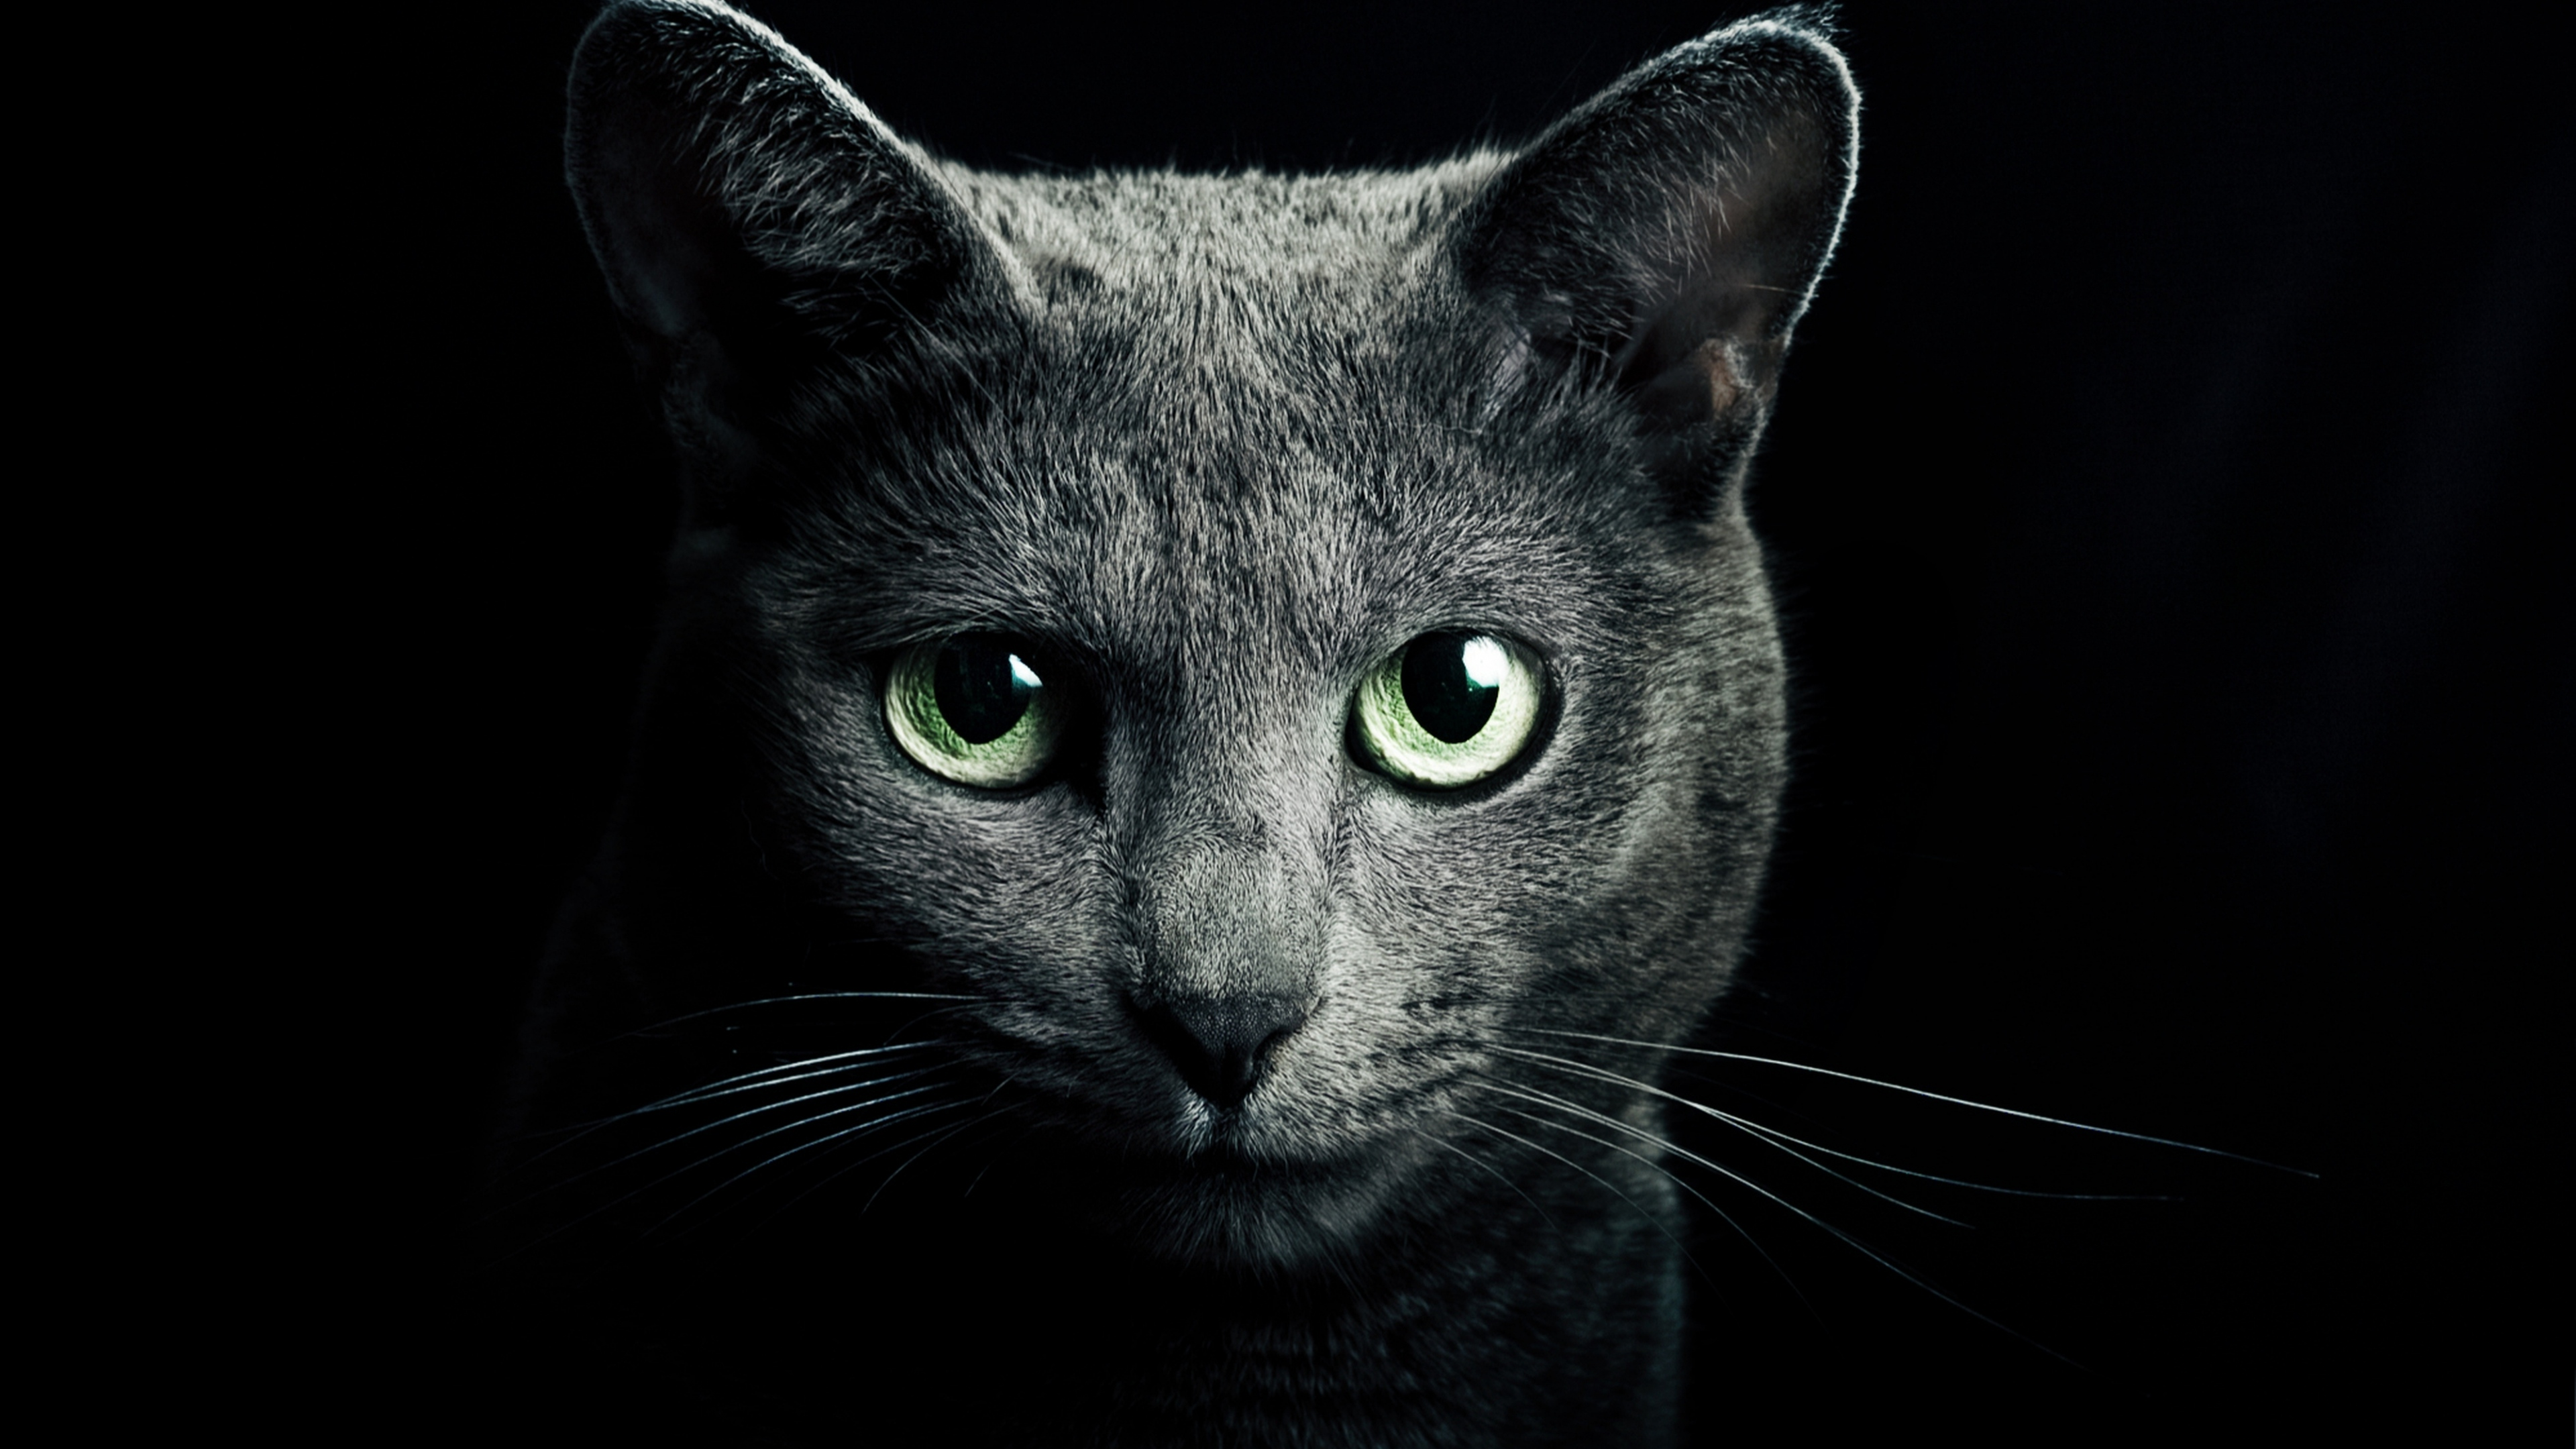 Wallpaper 38402160 Cat Black Breed Russian Blue Eyes Green Eyes